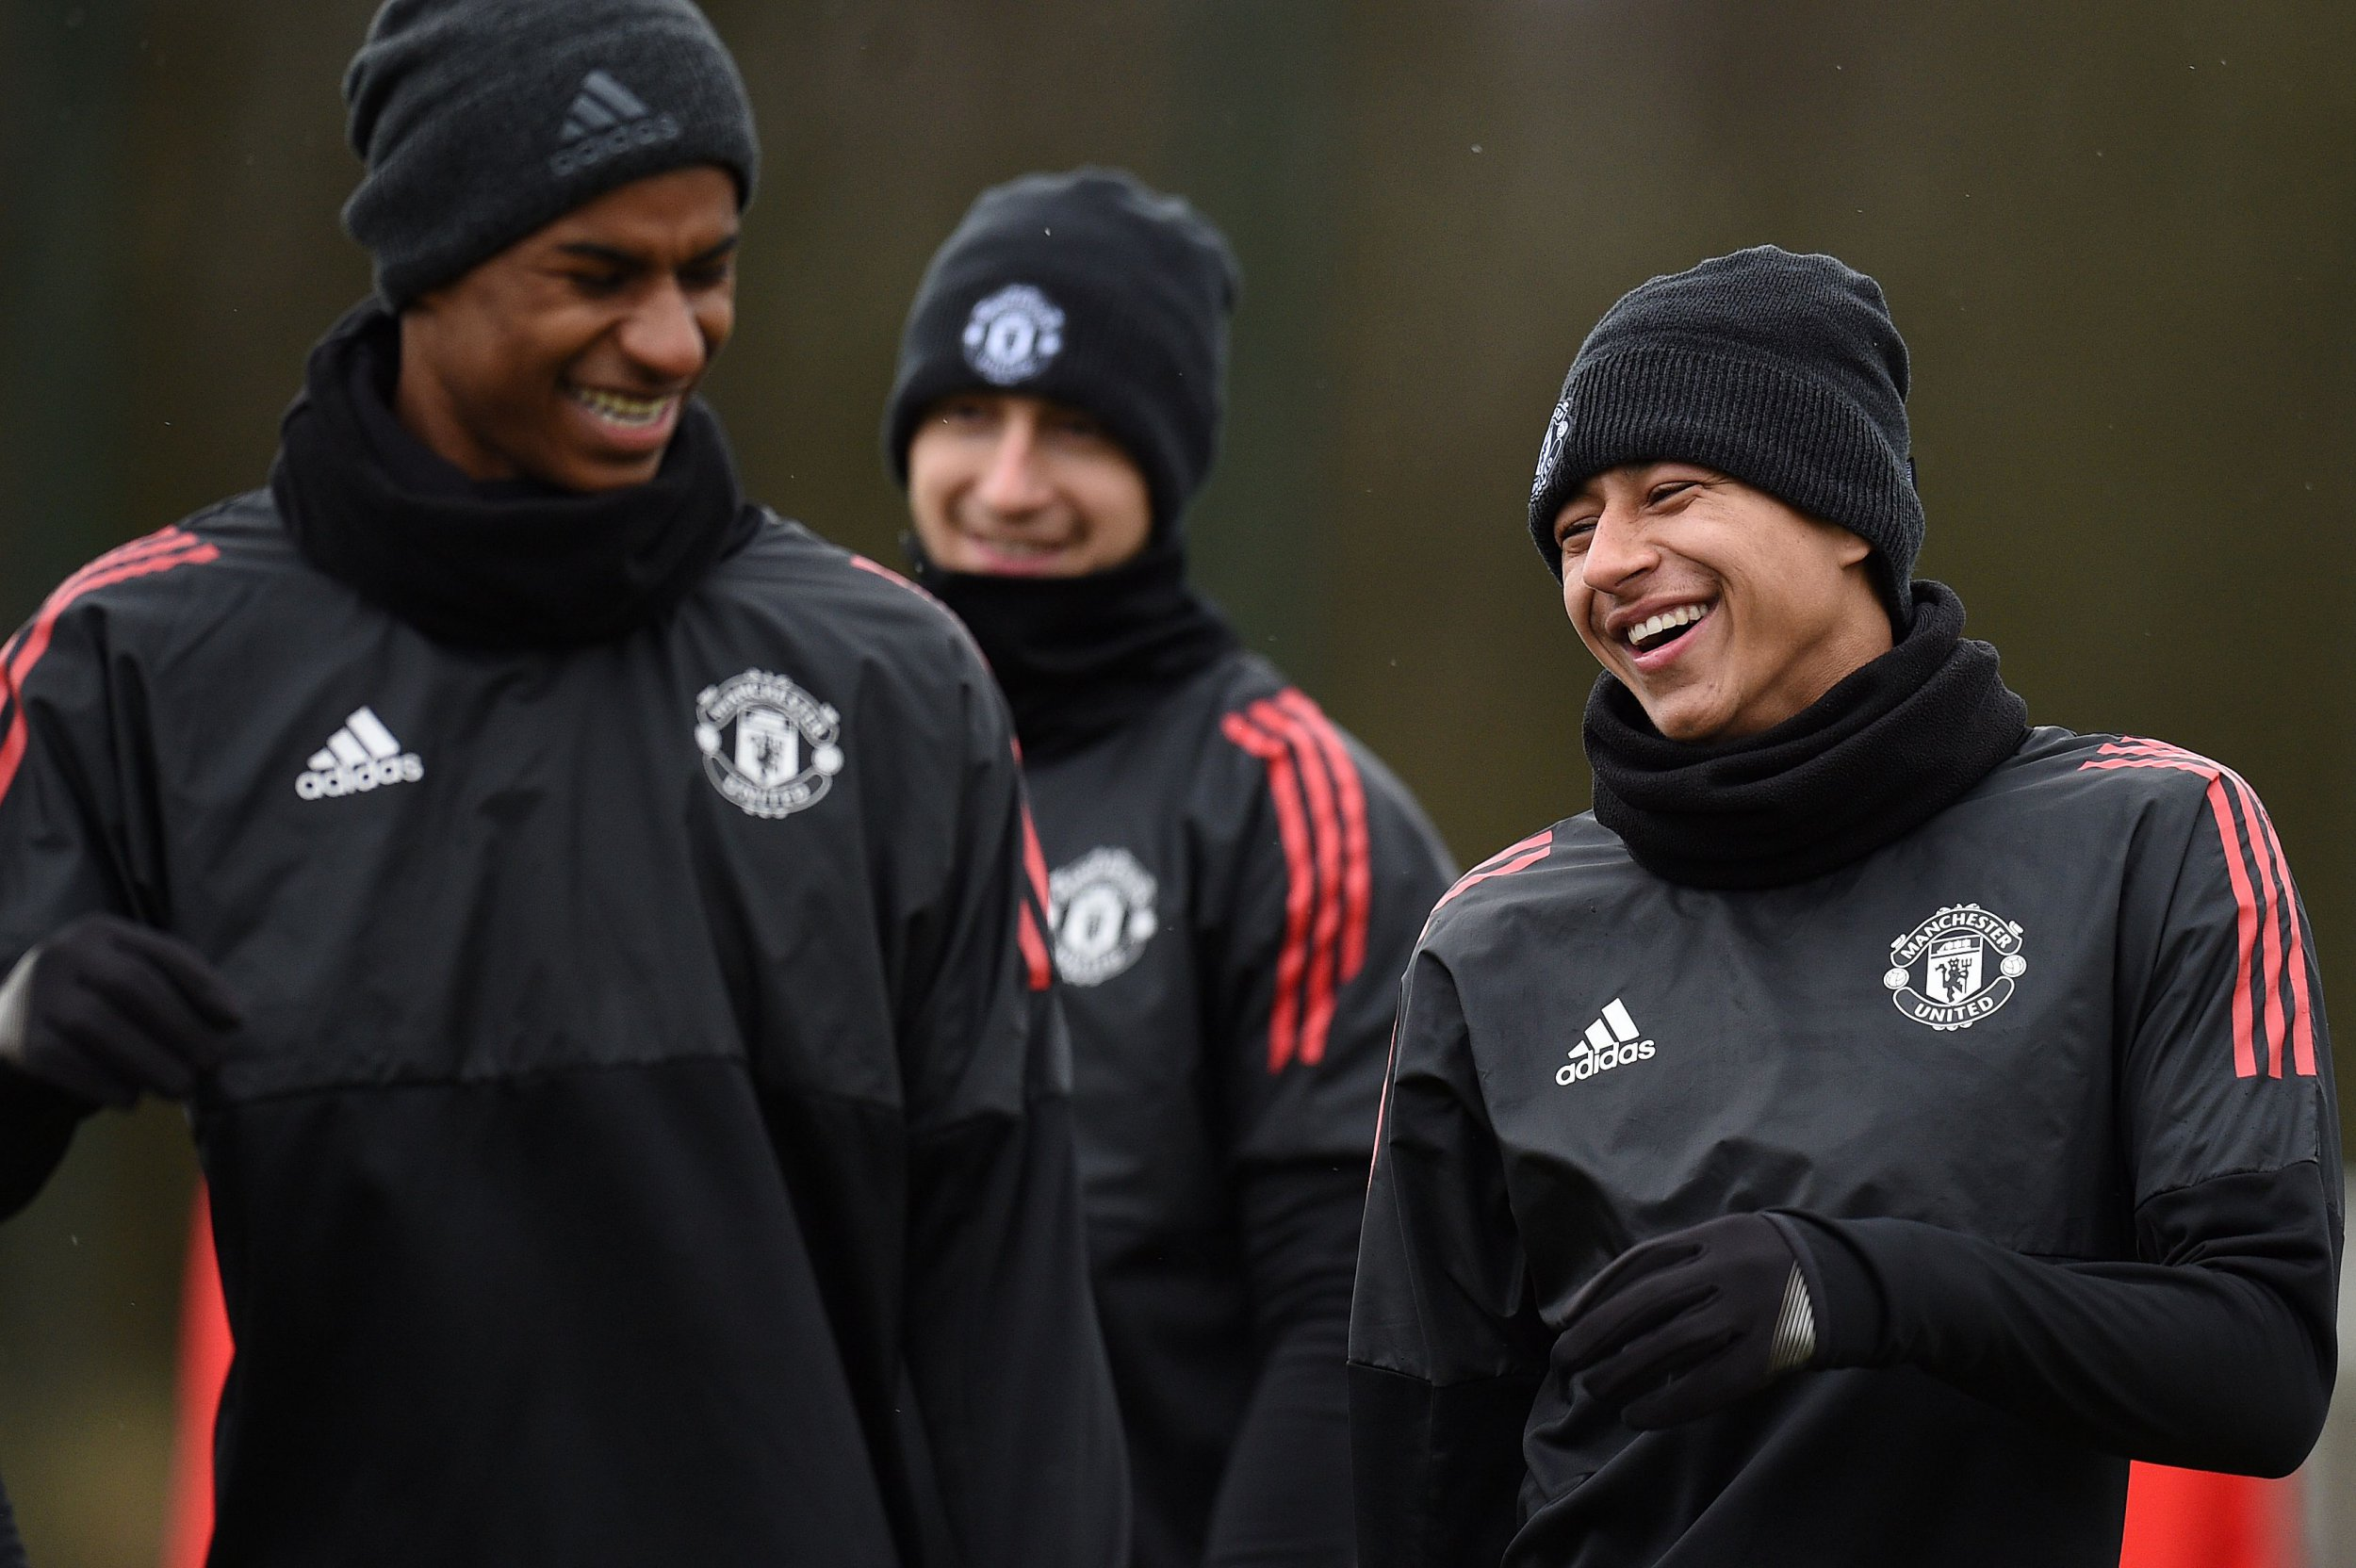 Manchester United's English striker Marcus Rashford (L) and Manchester United's English midfielder Jesse Lingard (R) attend a team training session at the club's training complex near Carrington, west of Manchester in north west England on March 12, 2018, on the eve of their UEFA Champions League round of 16 second-leg football match against Sevilla. / AFP PHOTO / Oli SCARFFOLI SCARFF/AFP/Getty Images